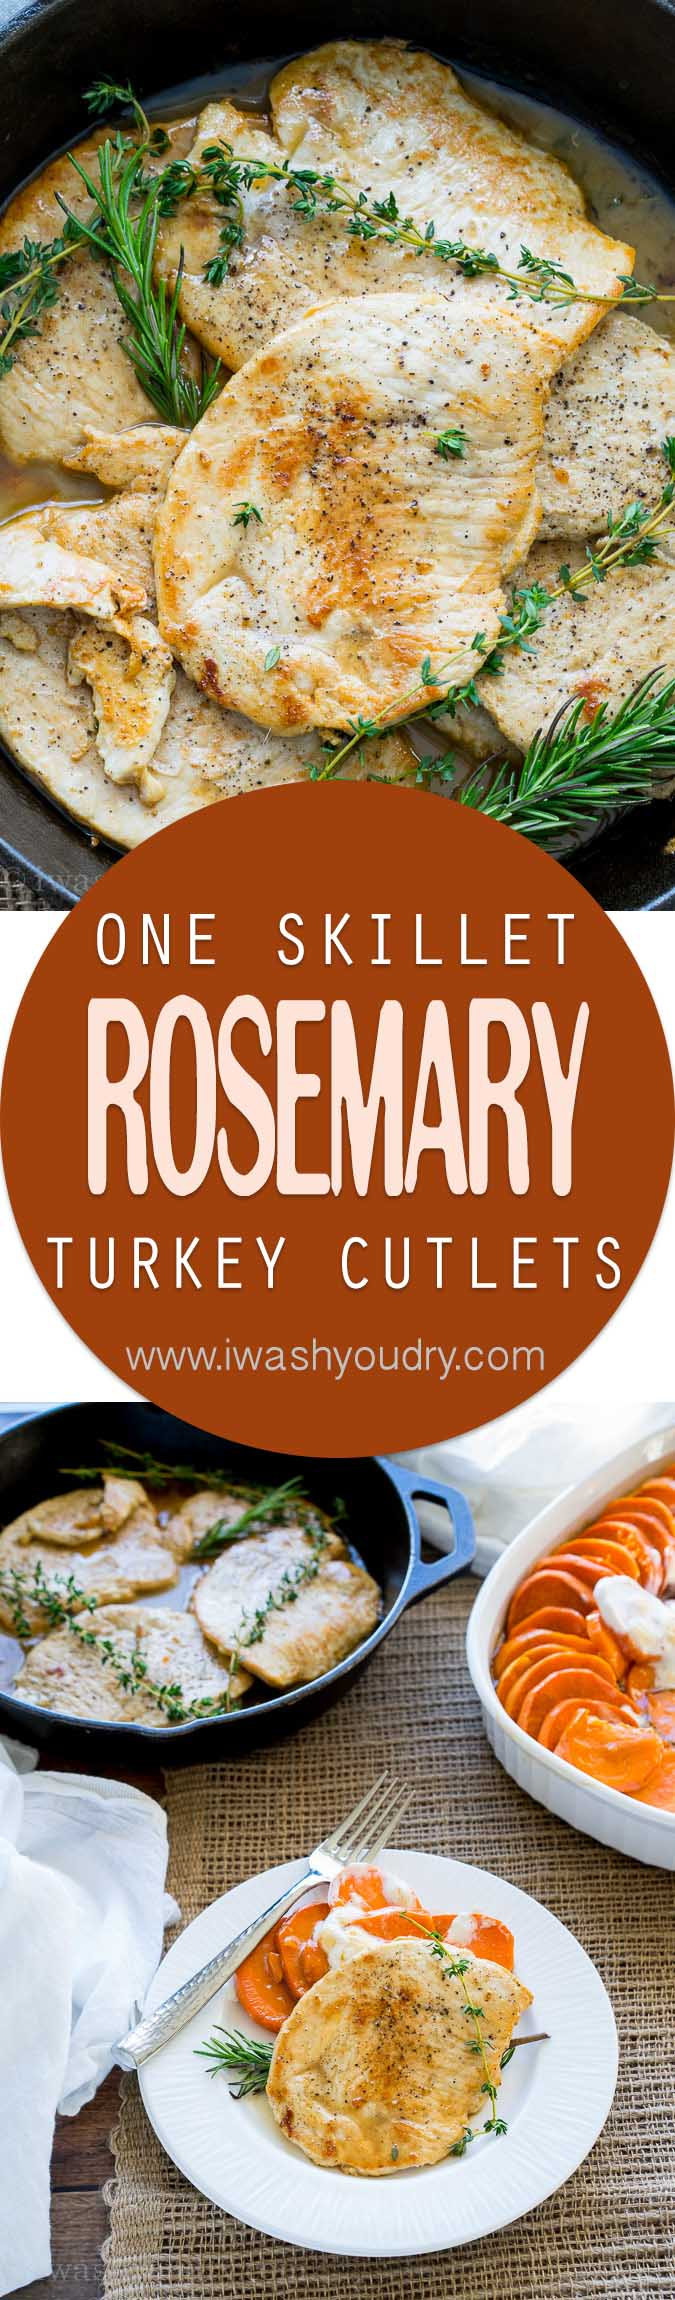 I can't believe how quick these Rosemary and Thyme Turkey Breast Cutlets came together. My whole family loved these! I love how it uses just one skillet!